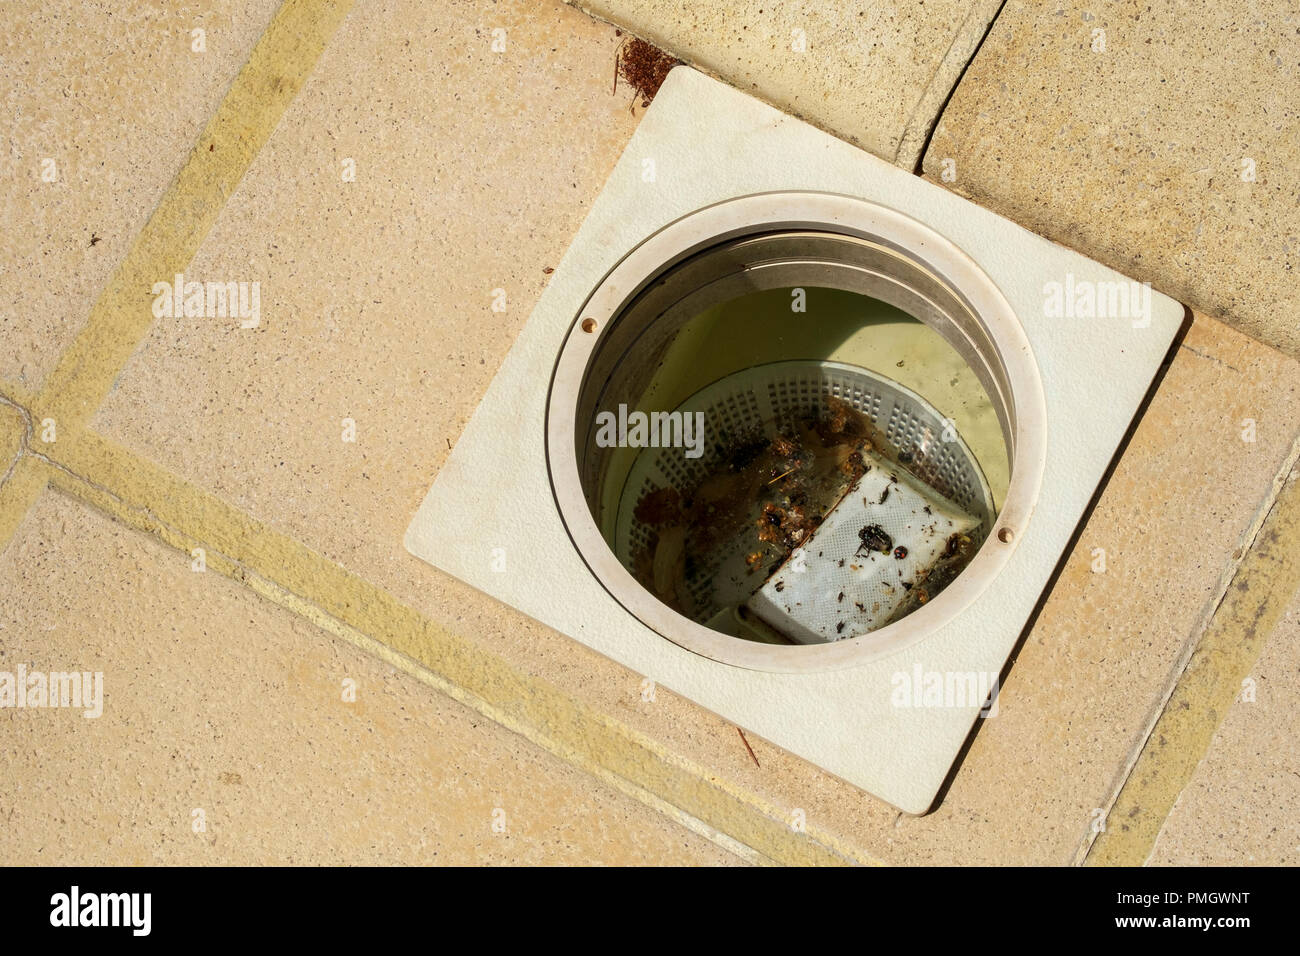 Swimming pool maintenance - a skimmer basket ful of debris and dead insects - Stock Image